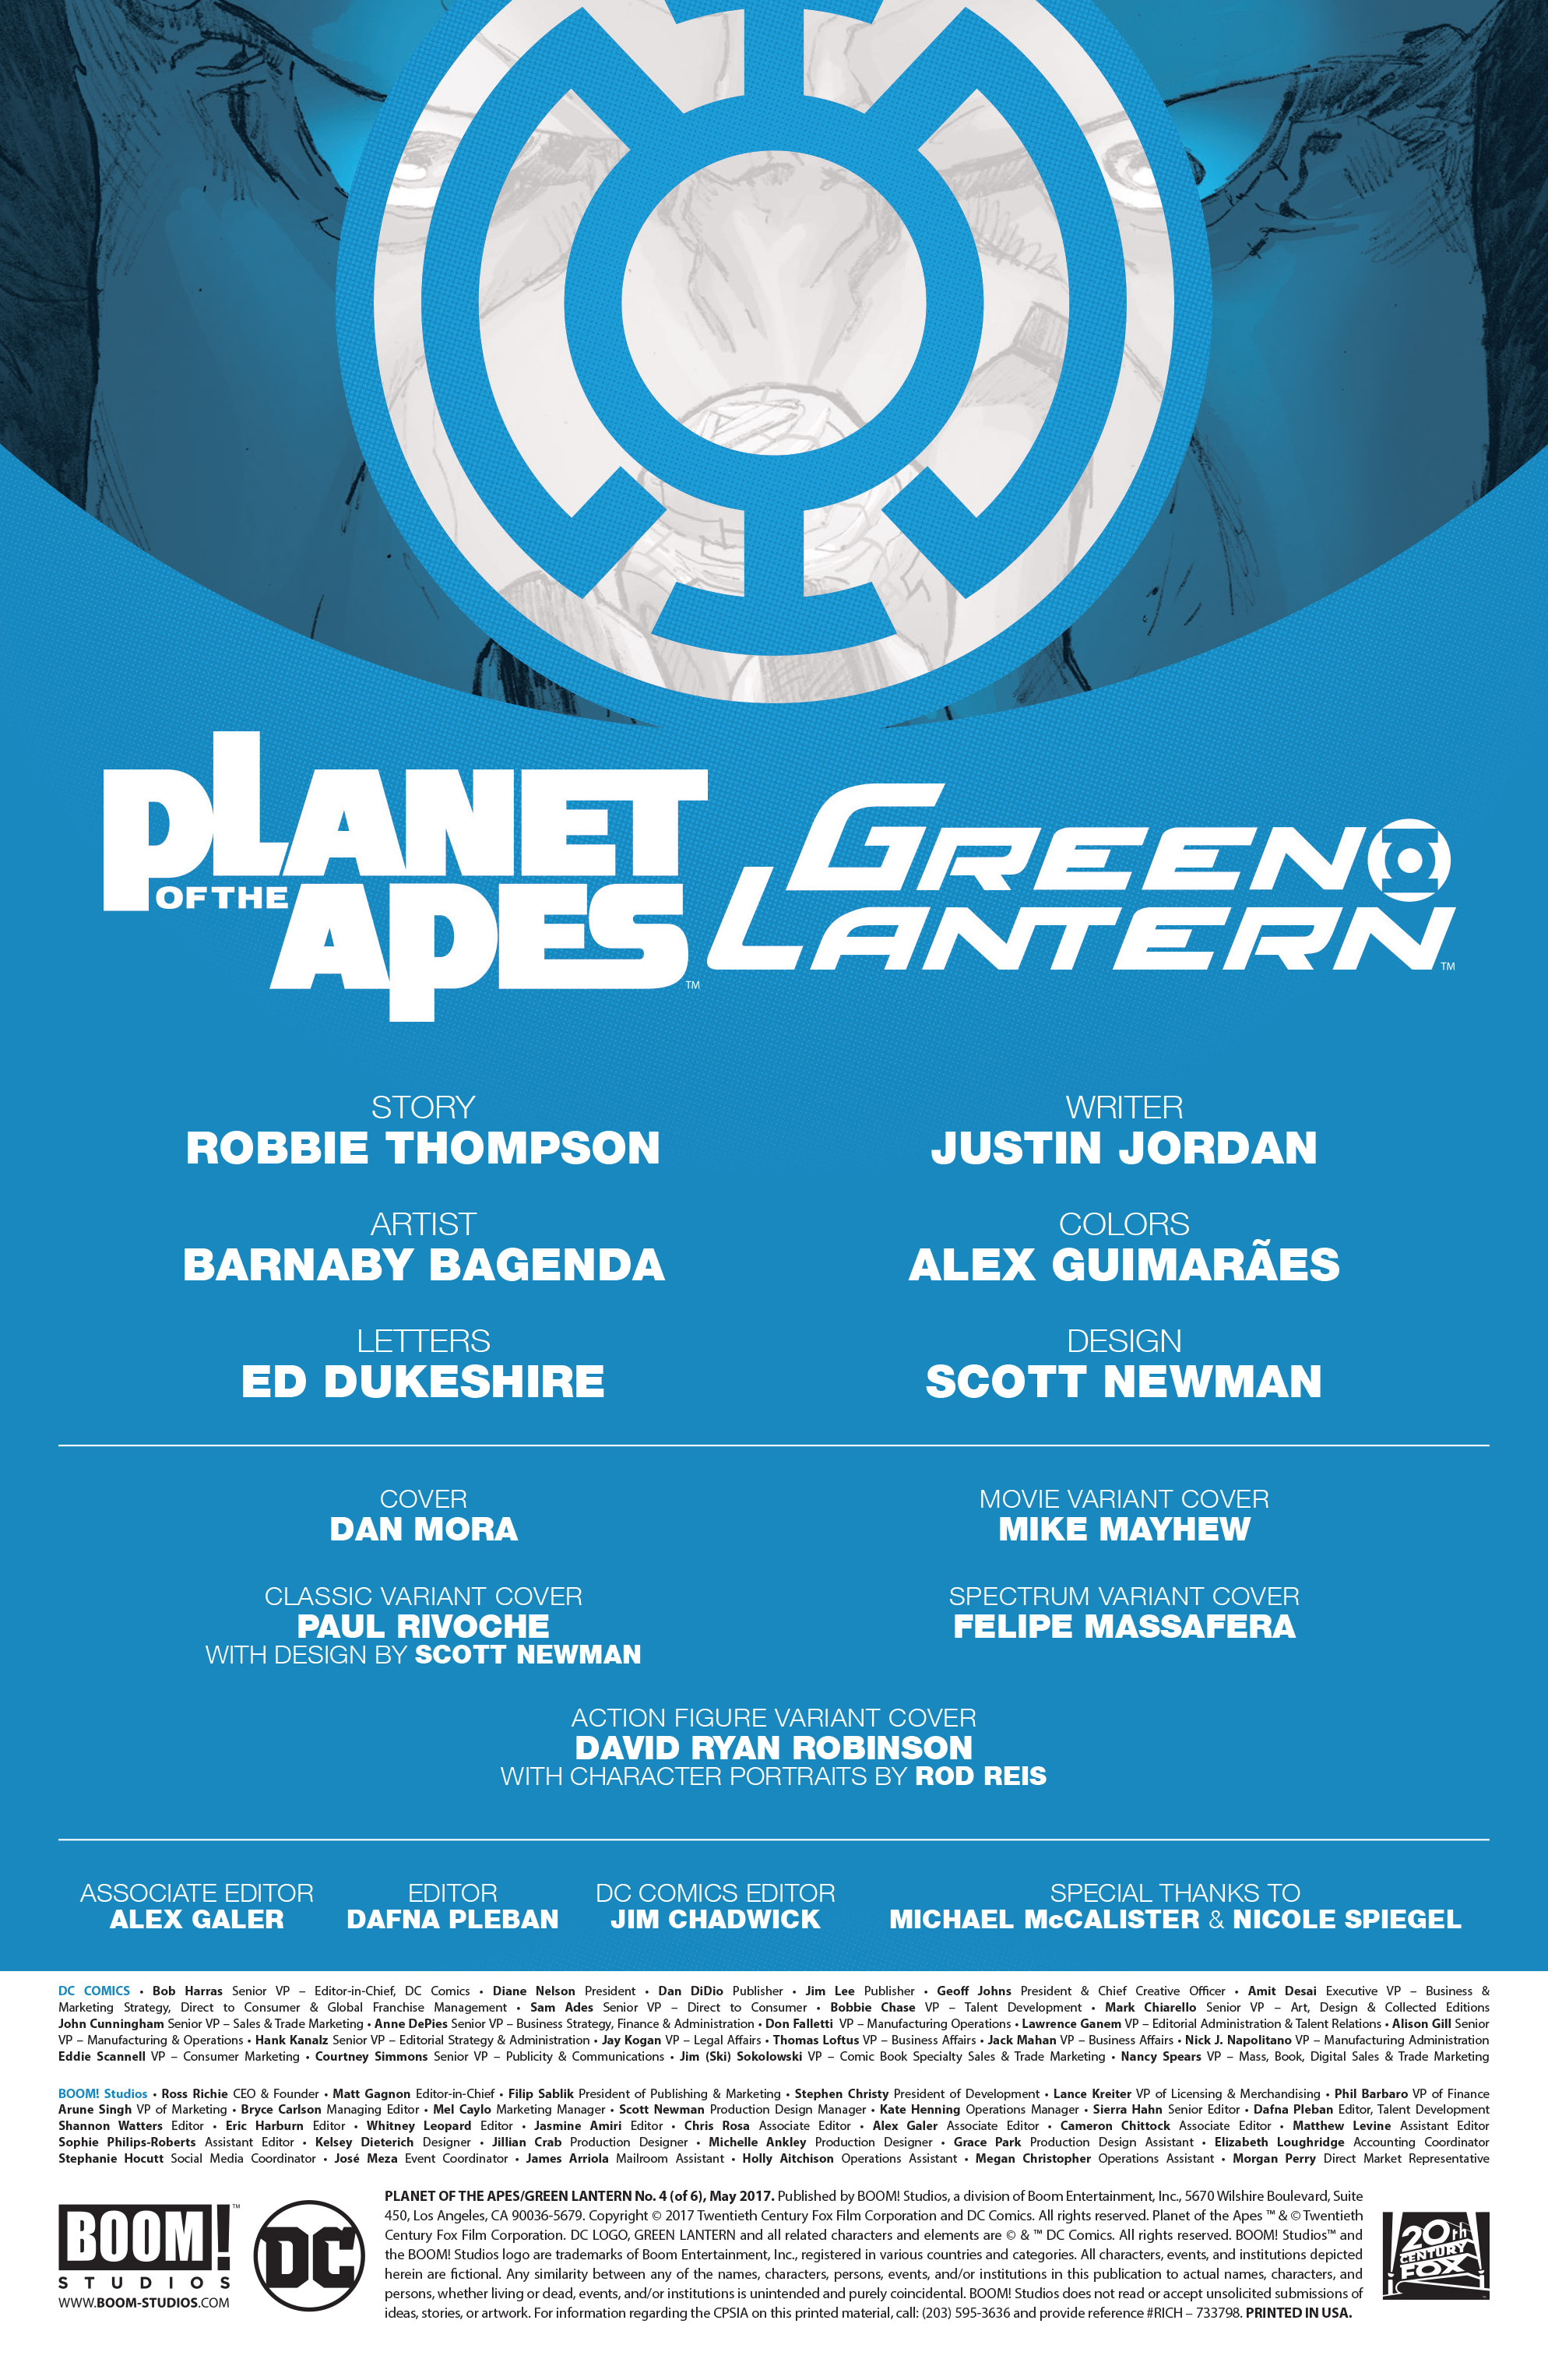 Read online Planet of the Apes/Green Lantern comic -  Issue #4 - 2